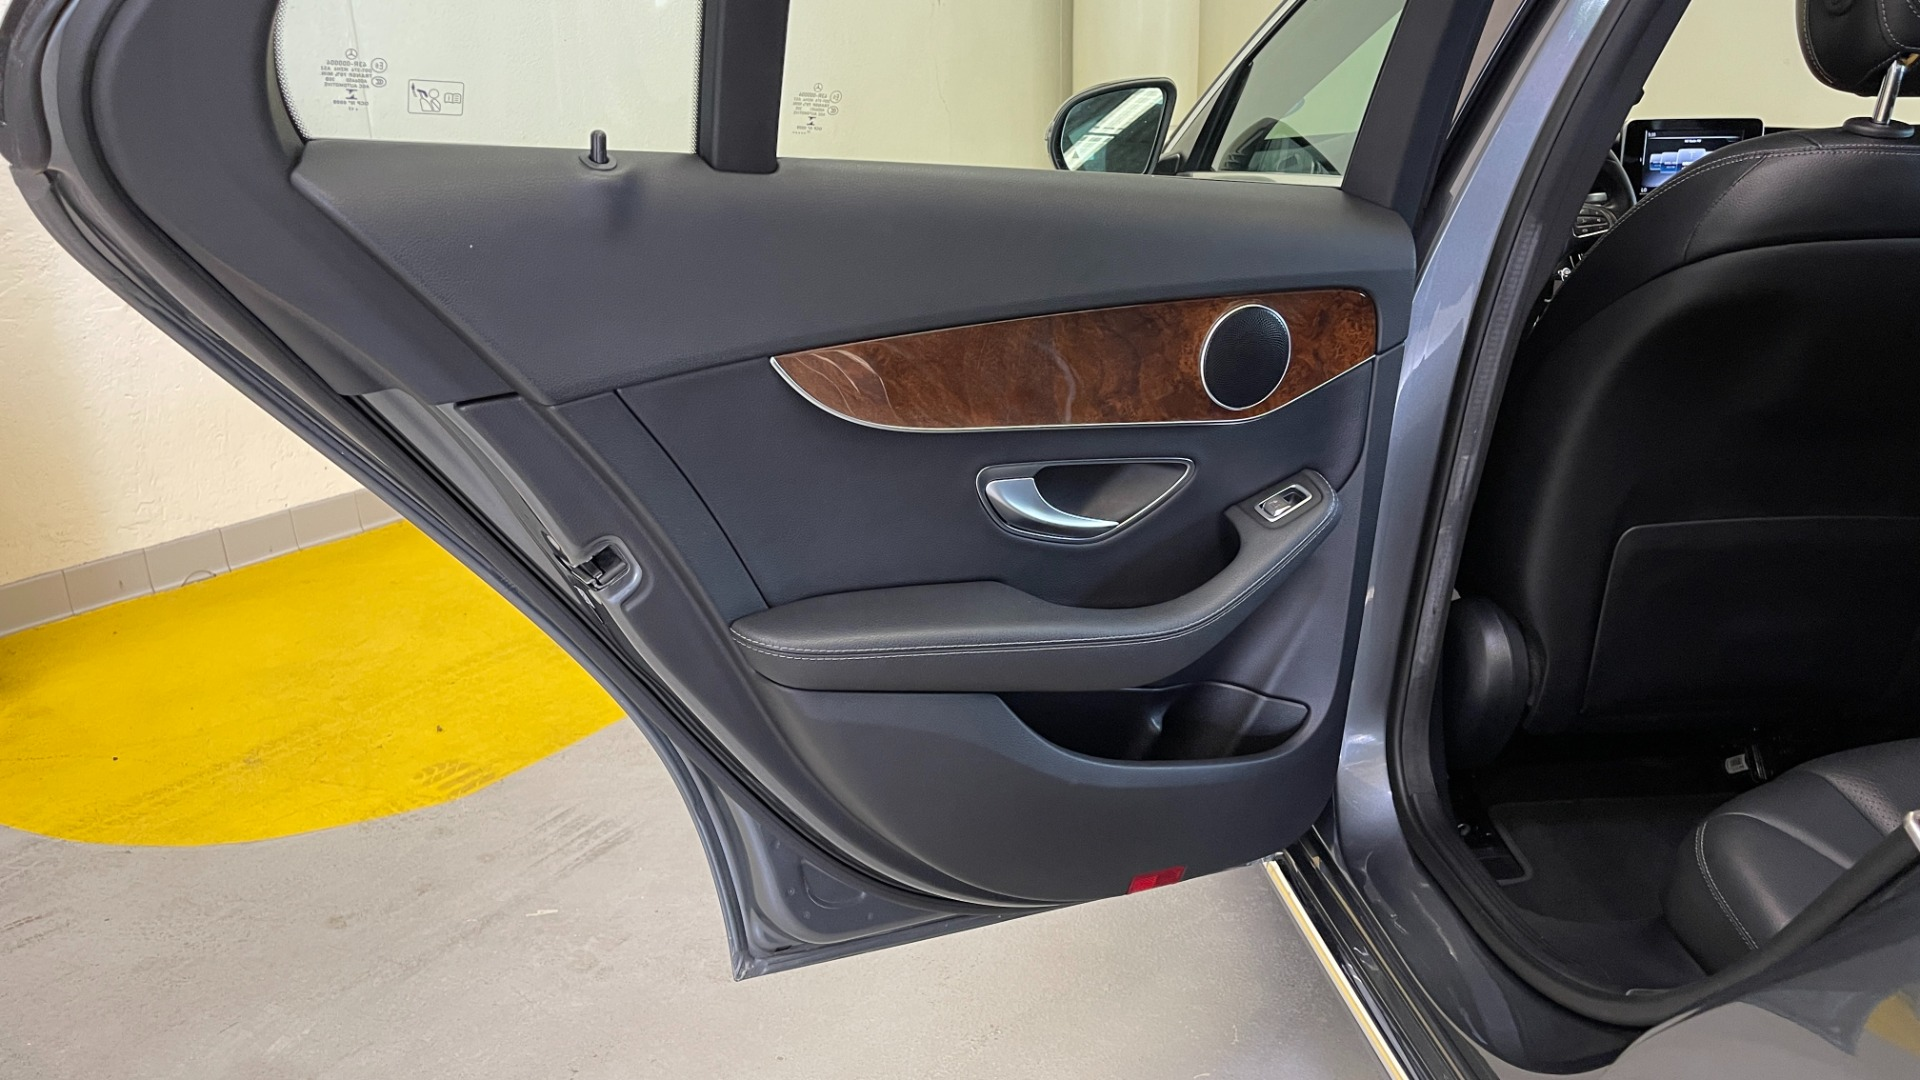 Used 2018 Mercedes-Benz C-CLASS C 300 PREMIUM / SUNROOF / APPLE CARPLAY / HTD STS / REARVIEW for sale $31,795 at Formula Imports in Charlotte NC 28227 38